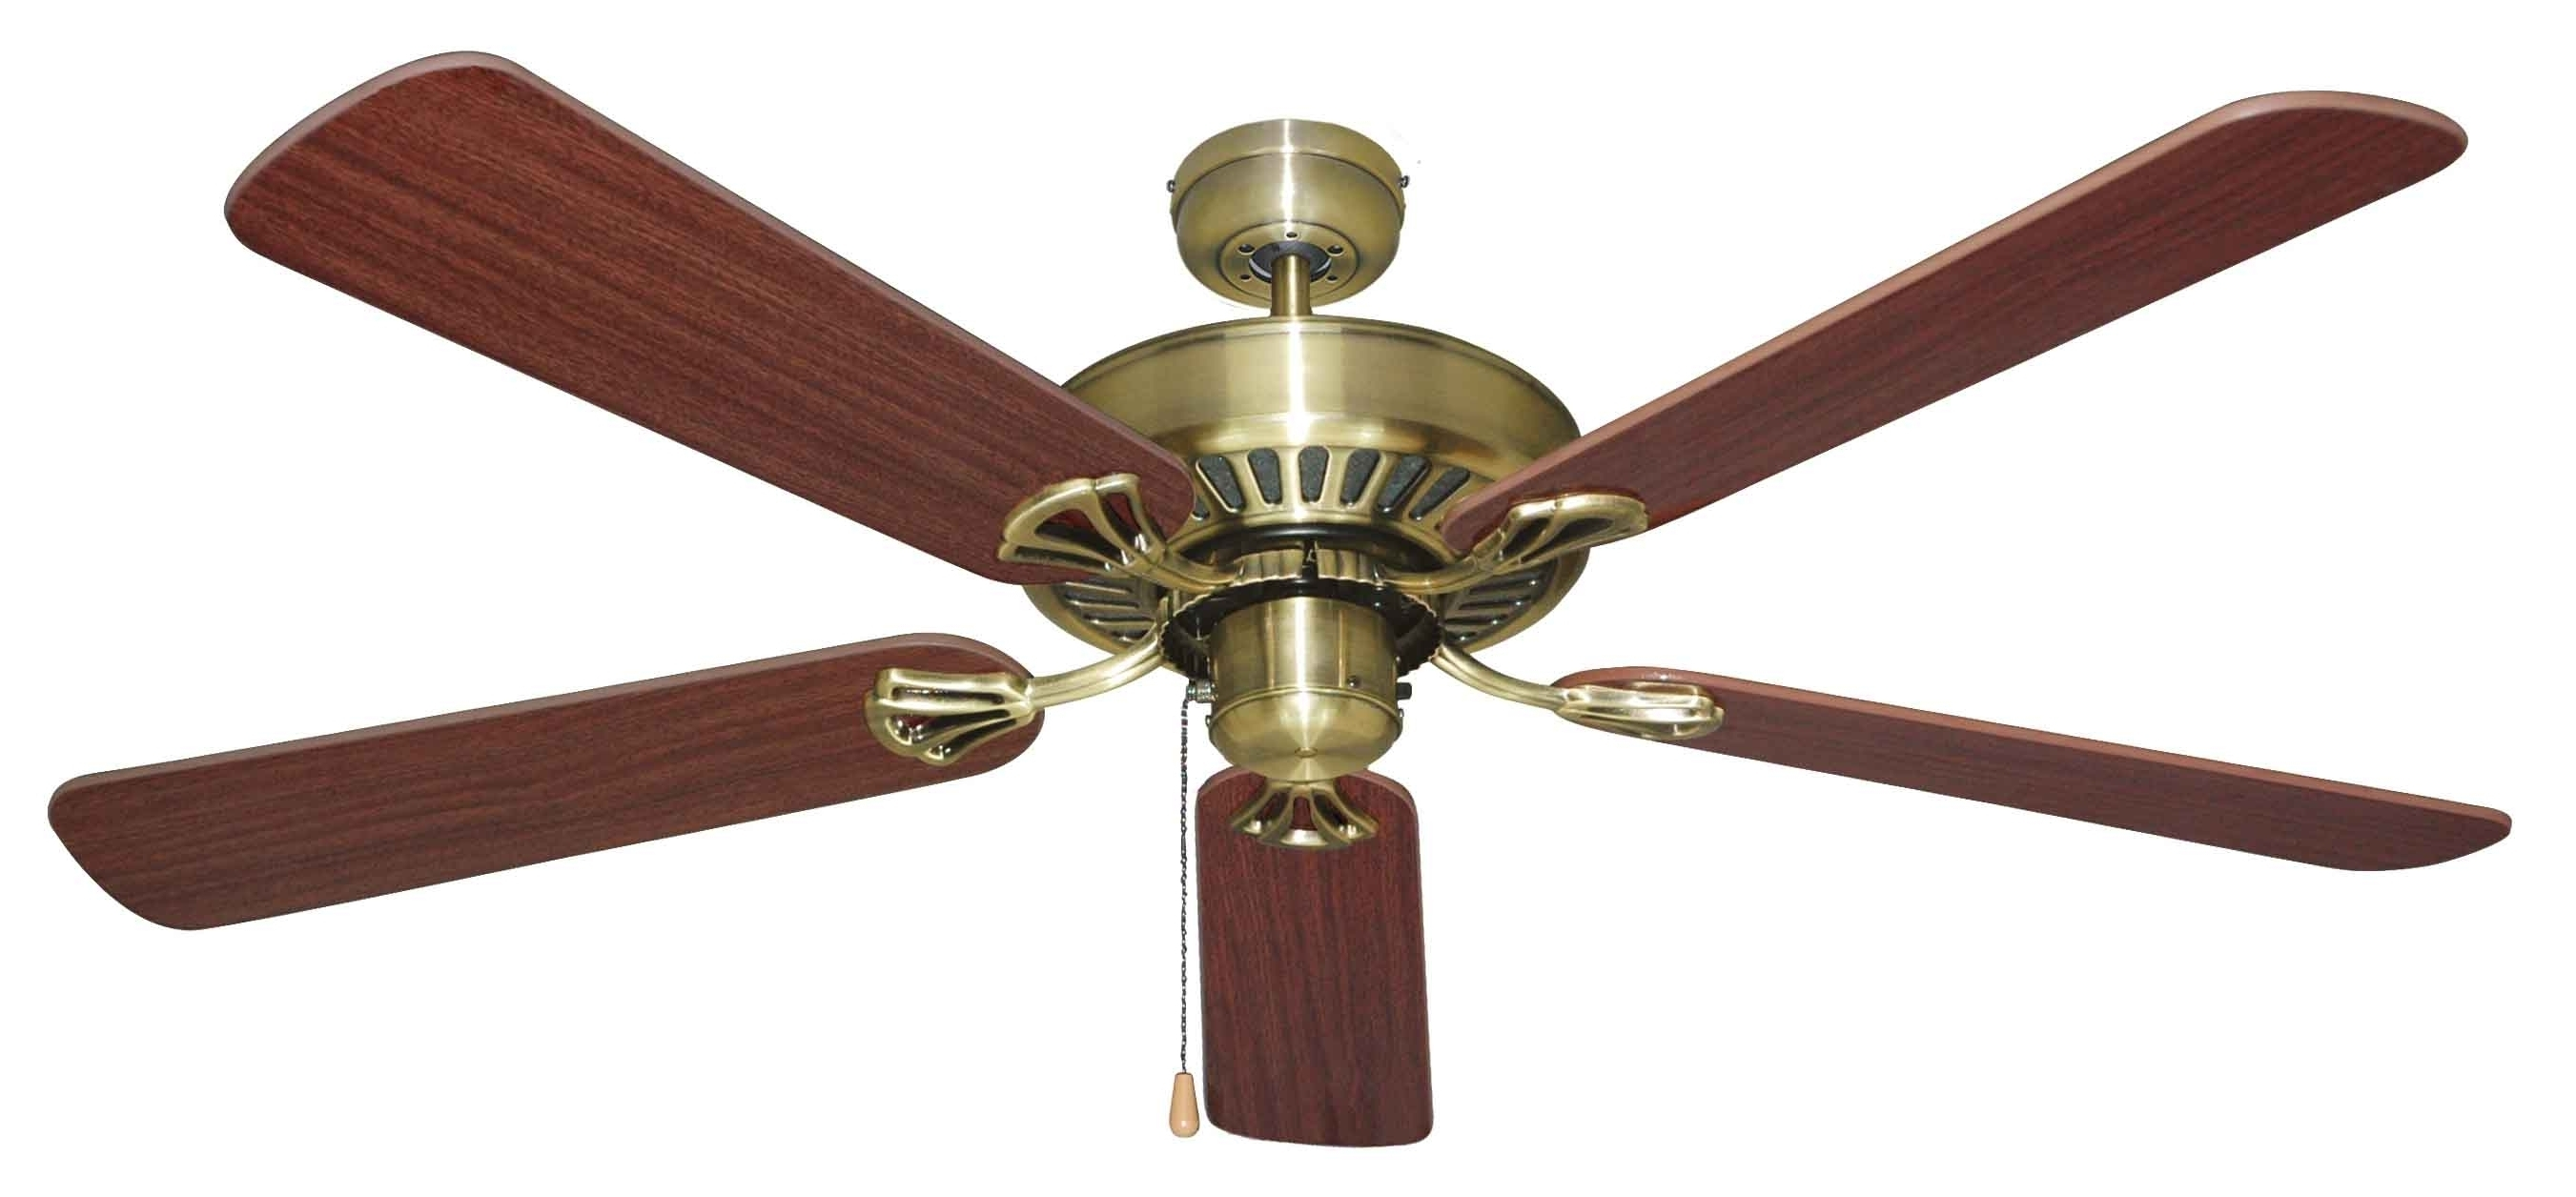 Outdoor Ceiling Fans At Bunnings Regarding Most Recent Mercator Ceiling Fans Bunnings • Ceiling Fans Ideas (View 16 of 20)